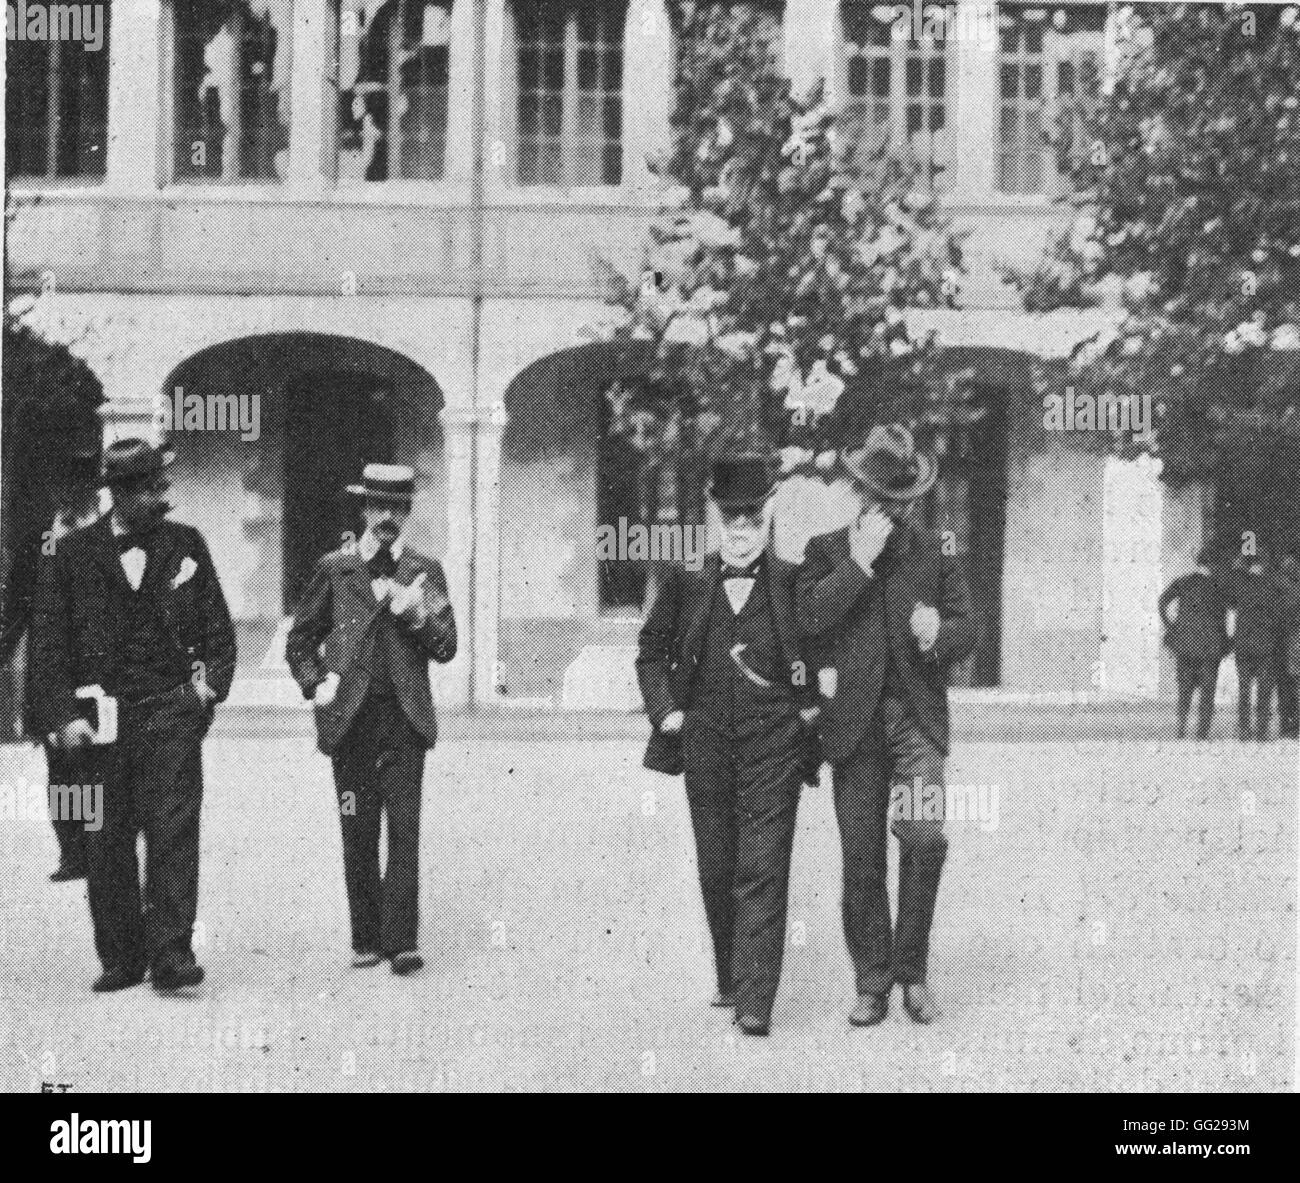 Dreyfus affair, the Rennes trial (1899): M. Freycinet coming out of the trial after having given evidence - Stock Image